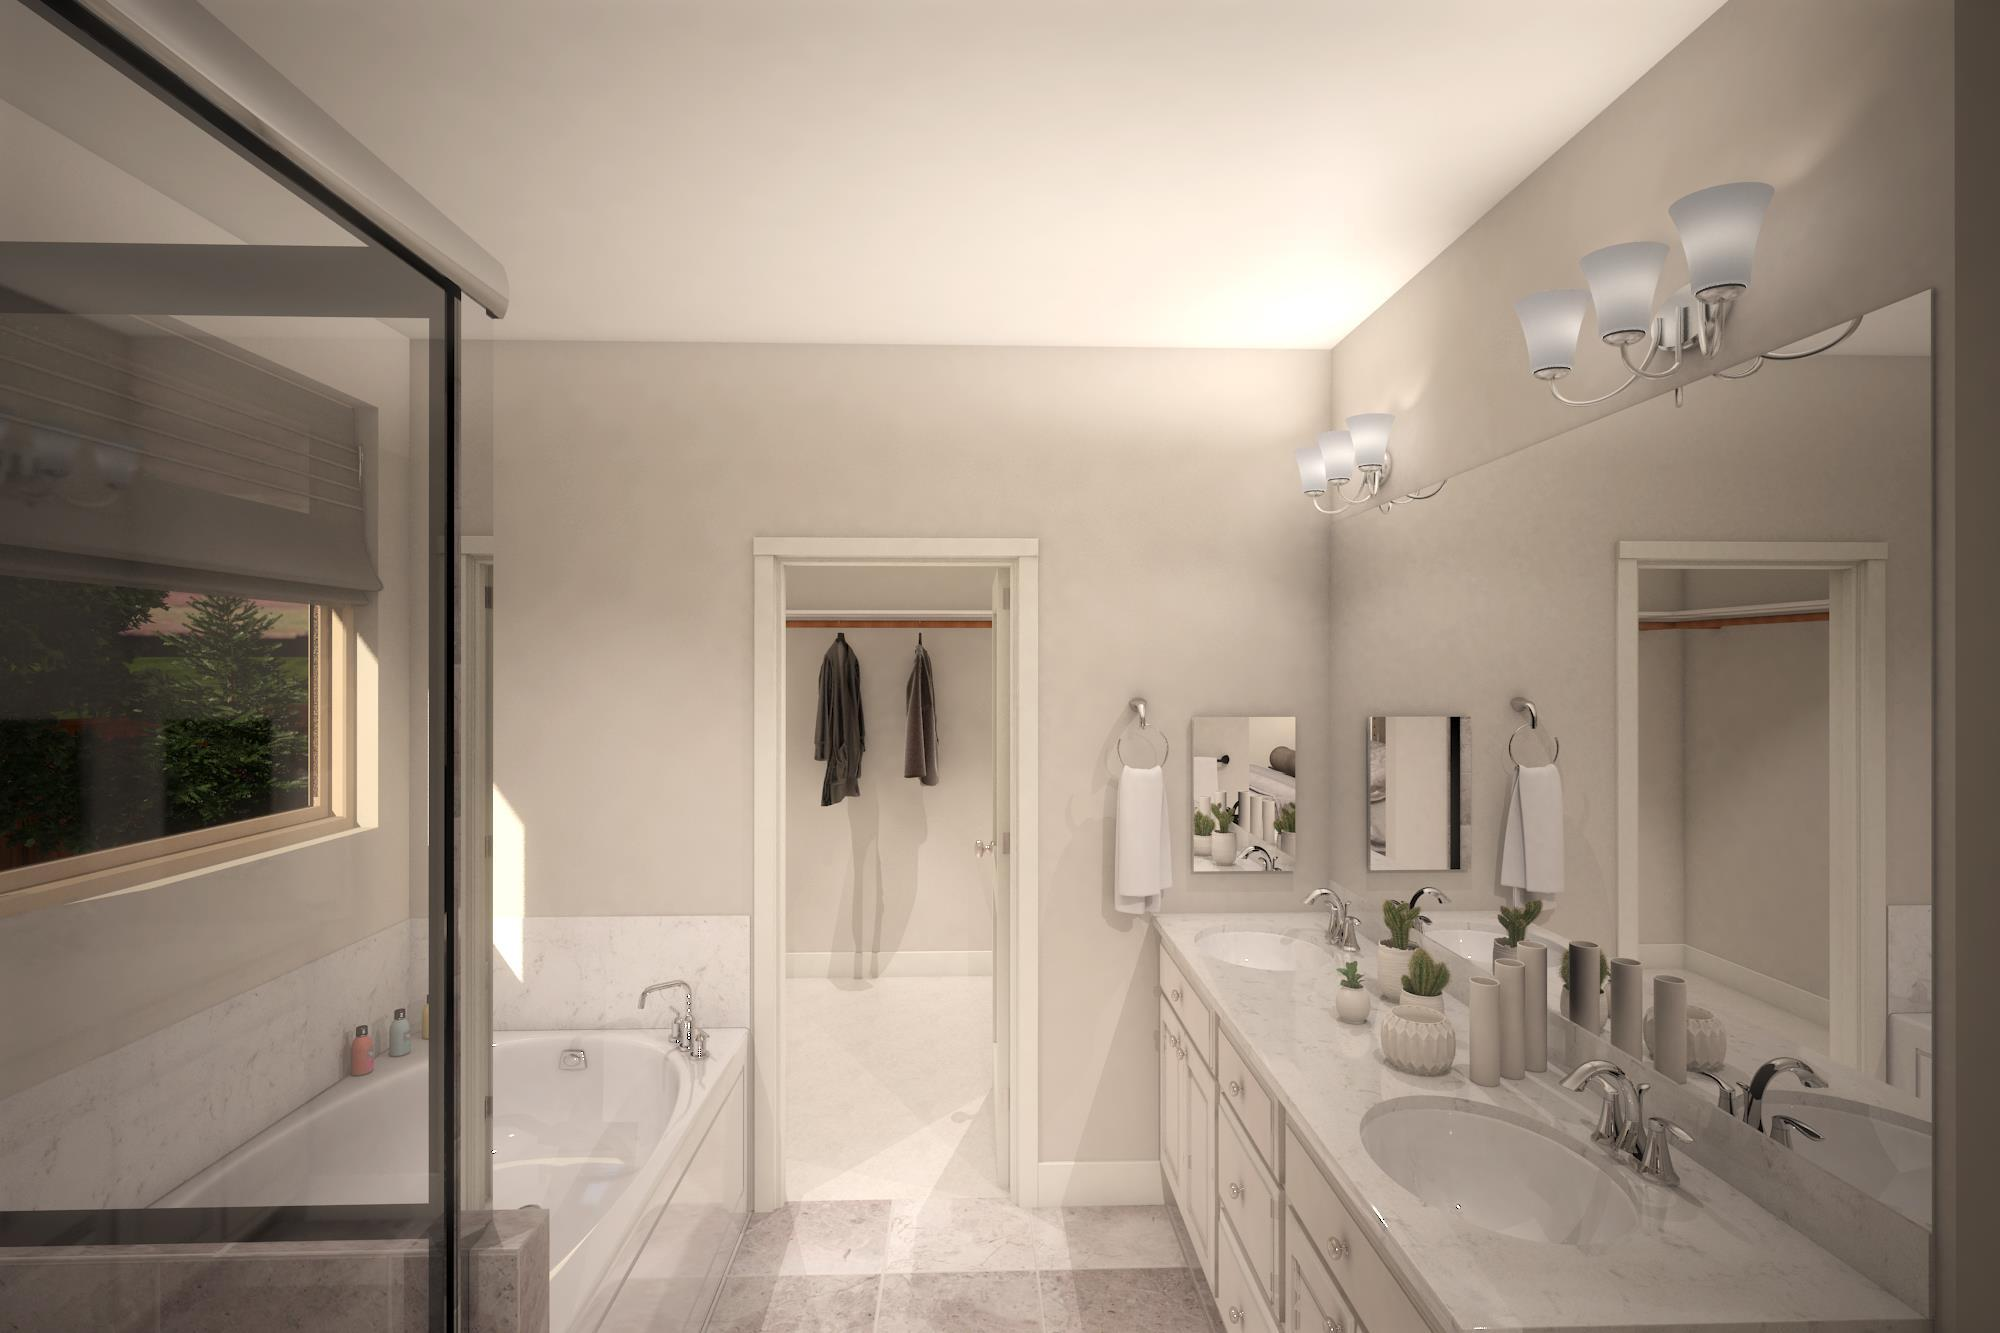 Bathroom featured in the Plan 3- 1739 By Jenuane Communities in Reno, NV